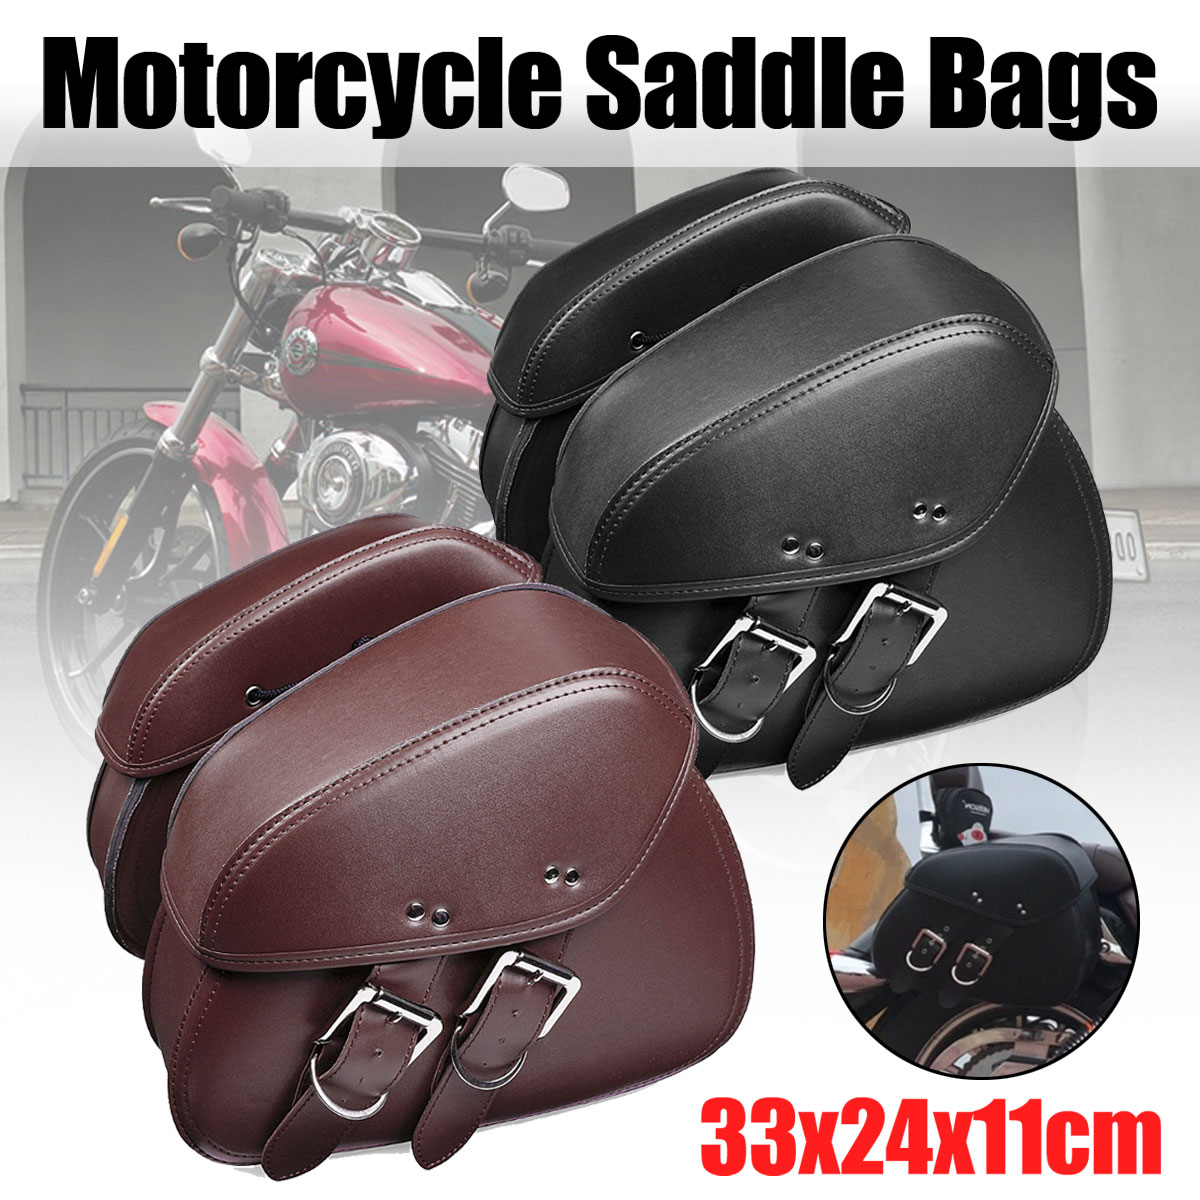 Universal Pair Black/Brown PU Leather Motorcycle Tool Bag Luggage Saddle Bags for Harley for KawasakiUniversal Pair Black/Brown PU Leather Motorcycle Tool Bag Luggage Saddle Bags for Harley for Kawasaki